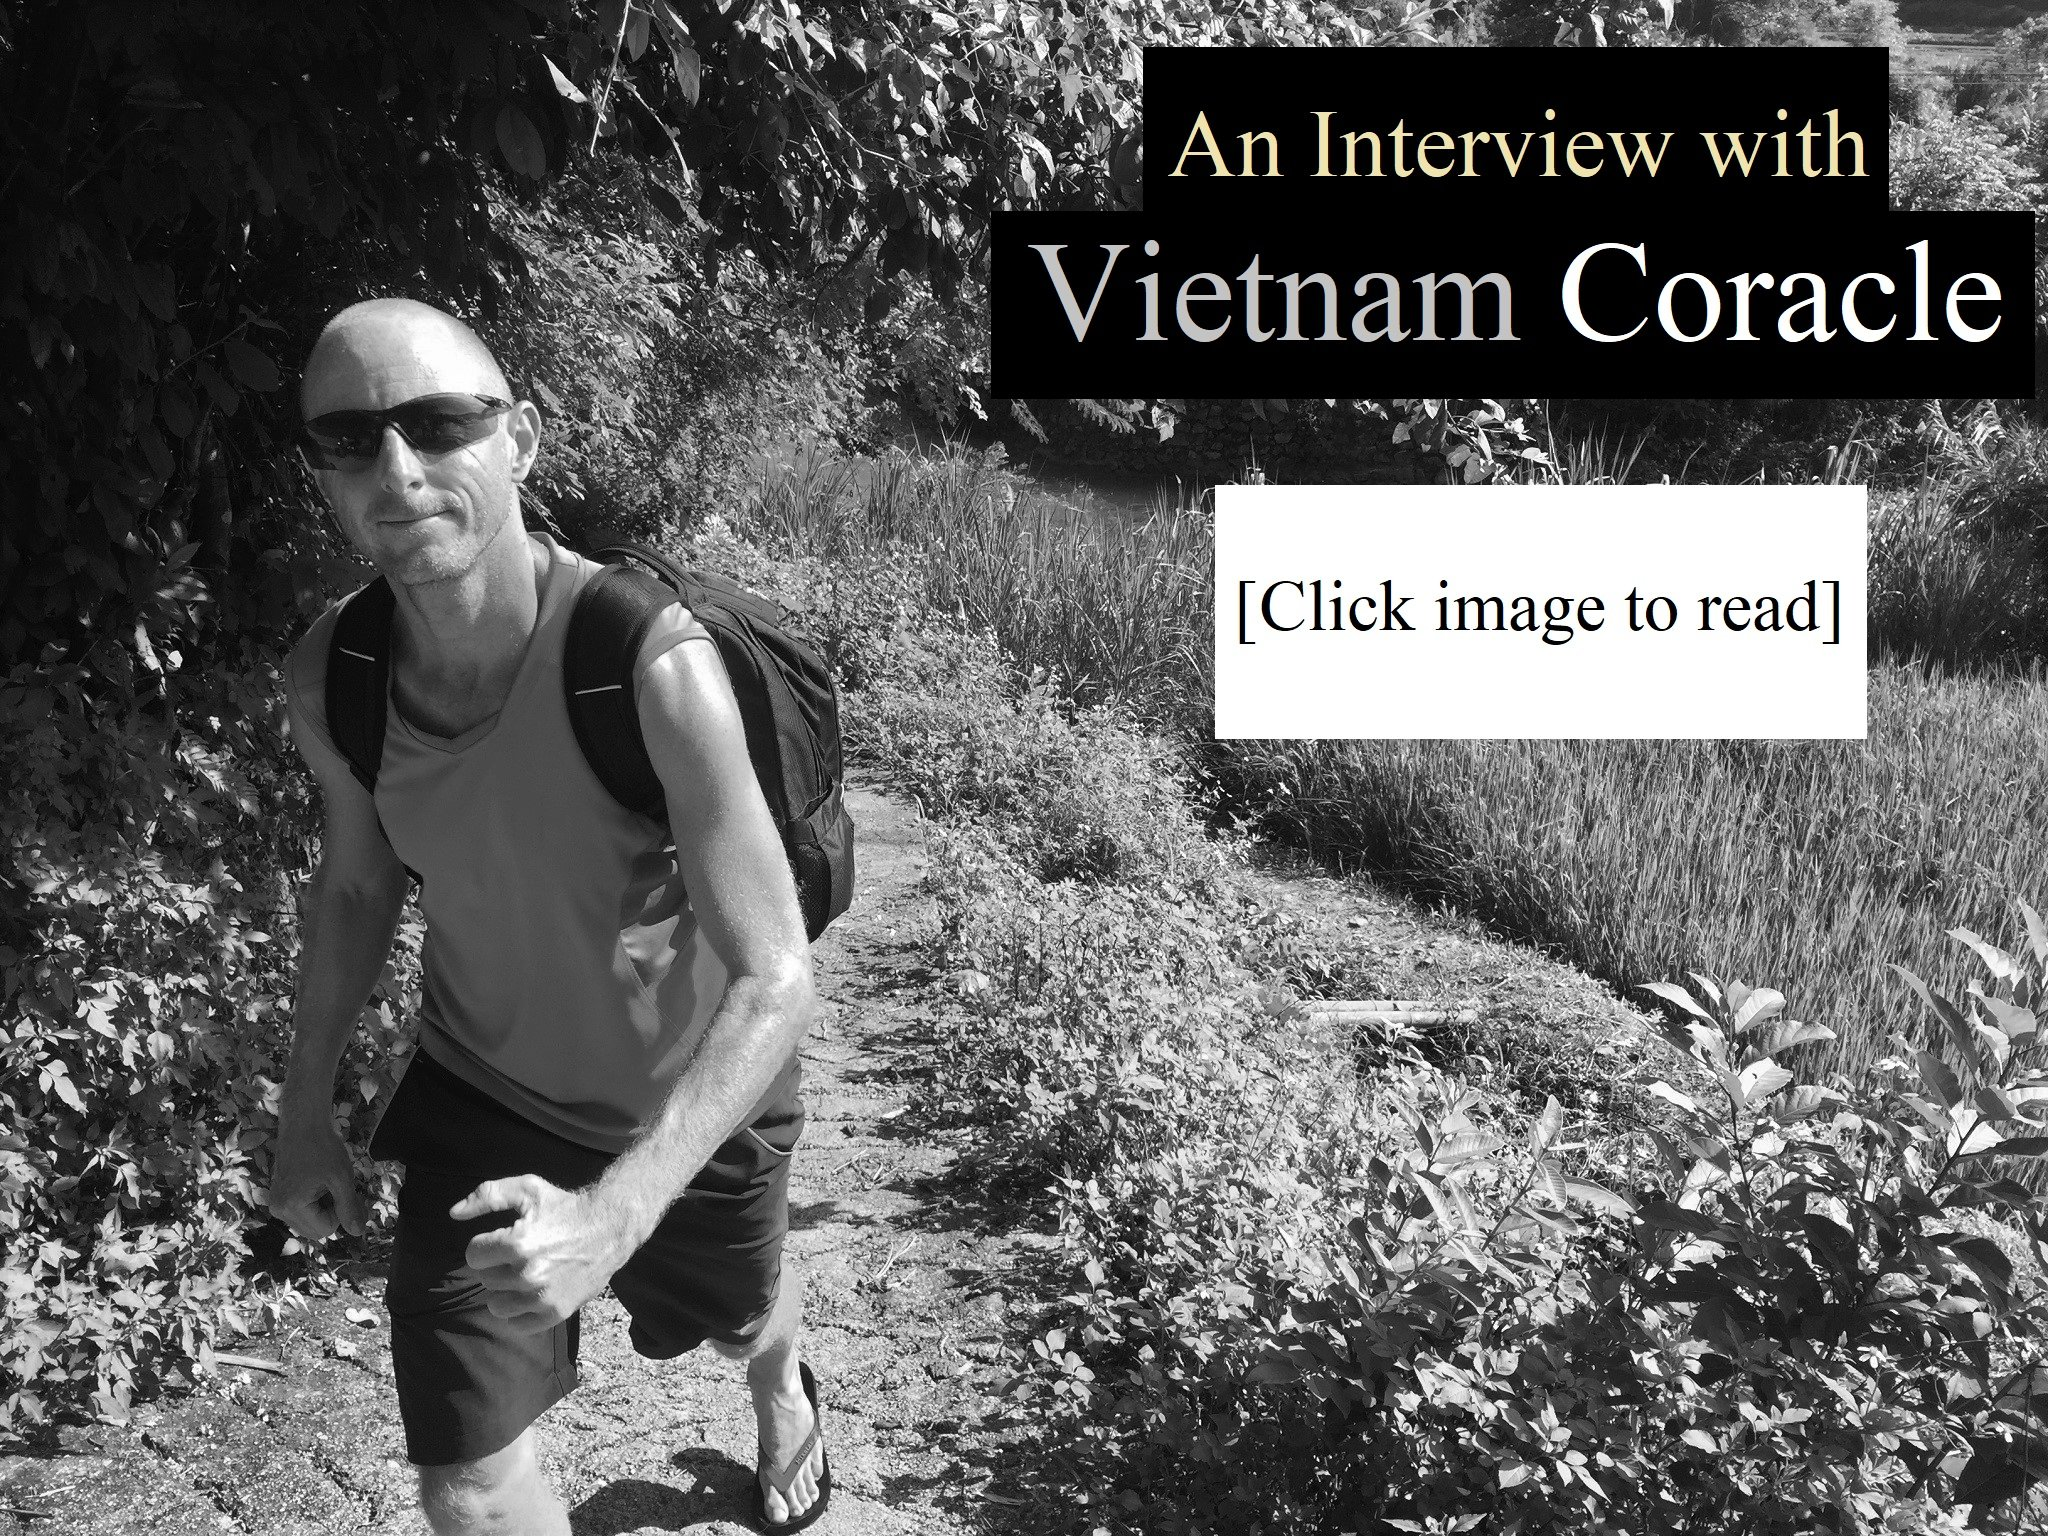 An Interview with Vietnam Coracle